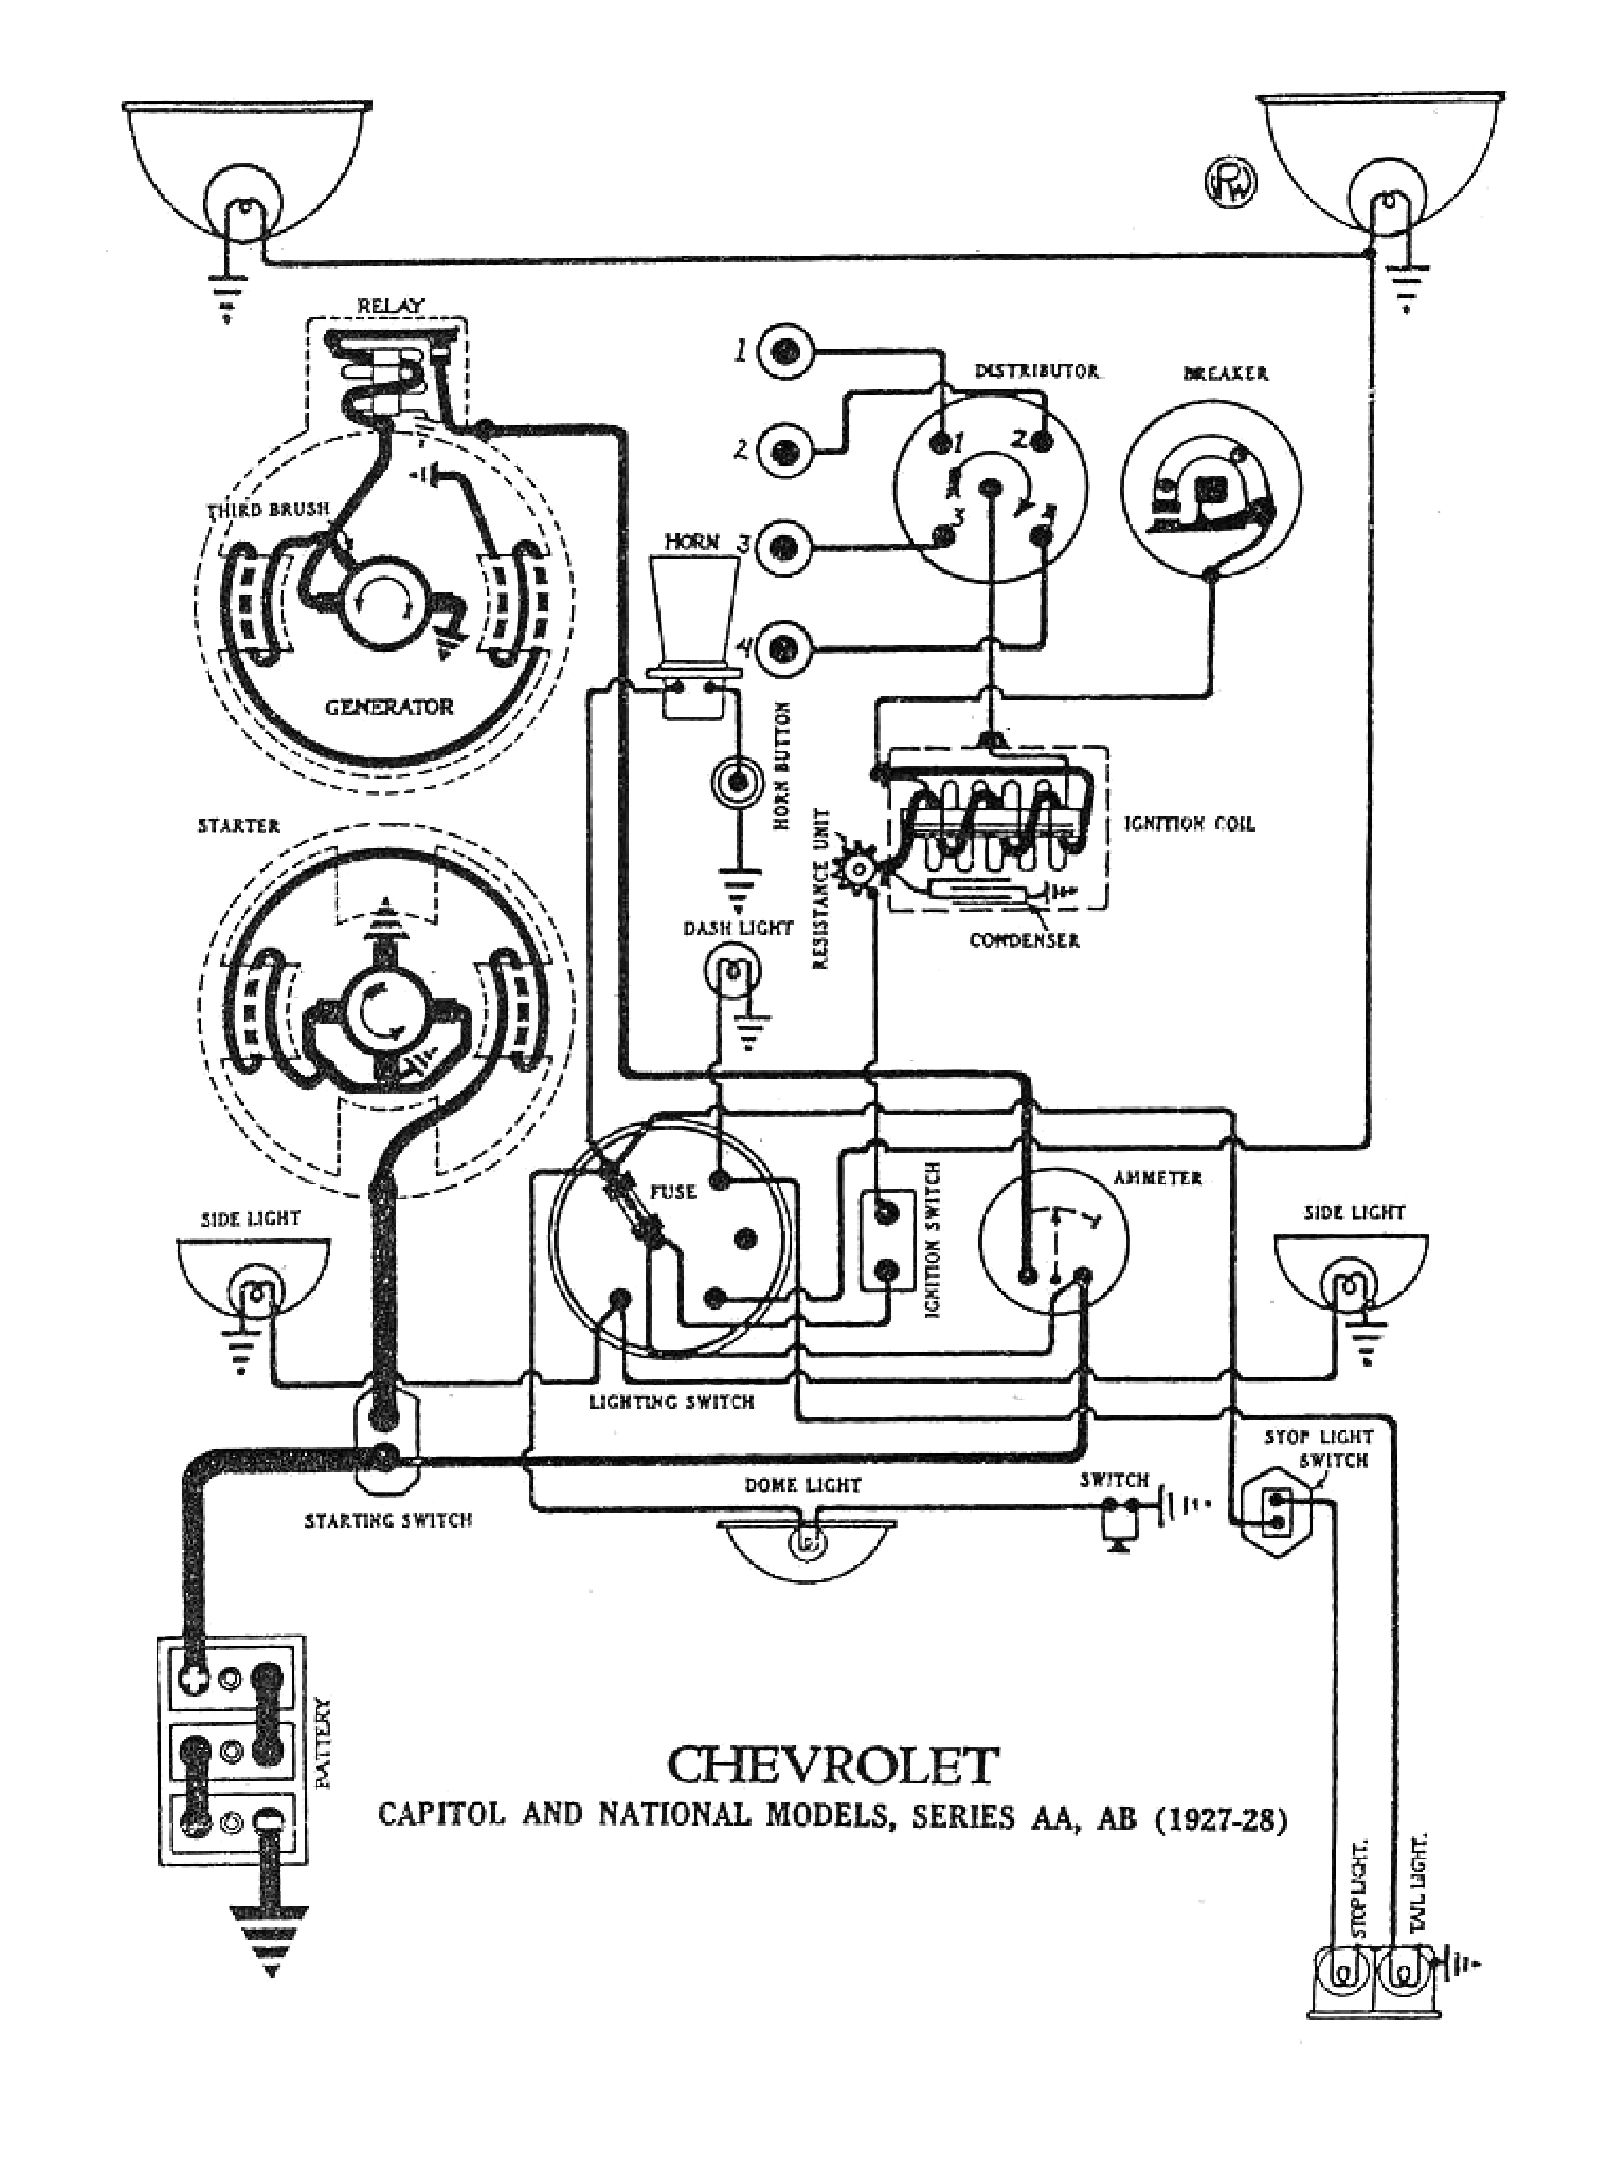 chevy small block wiring diagram free download wiring library rh 17 akszer eu